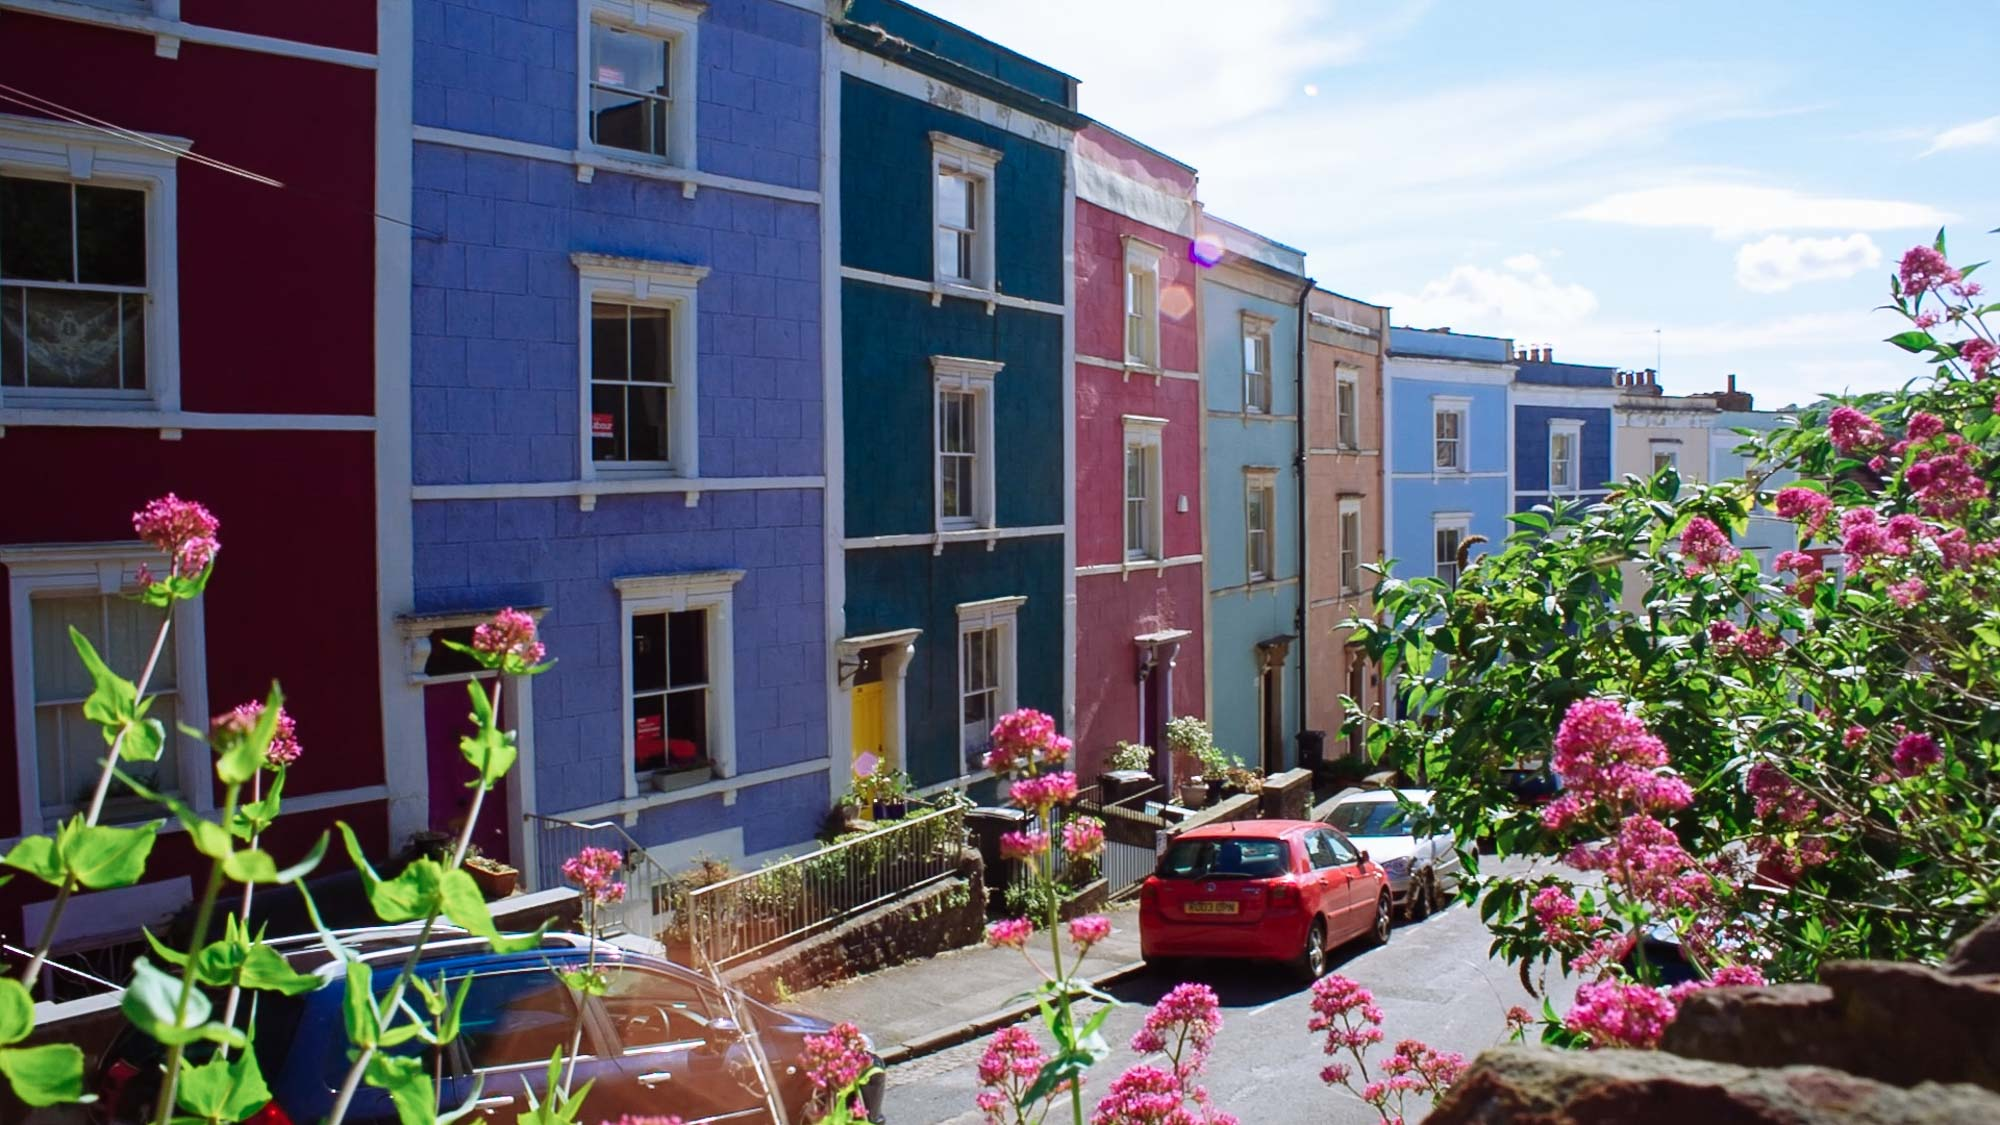 Things to do in Bristol - Clifton Wood Houses